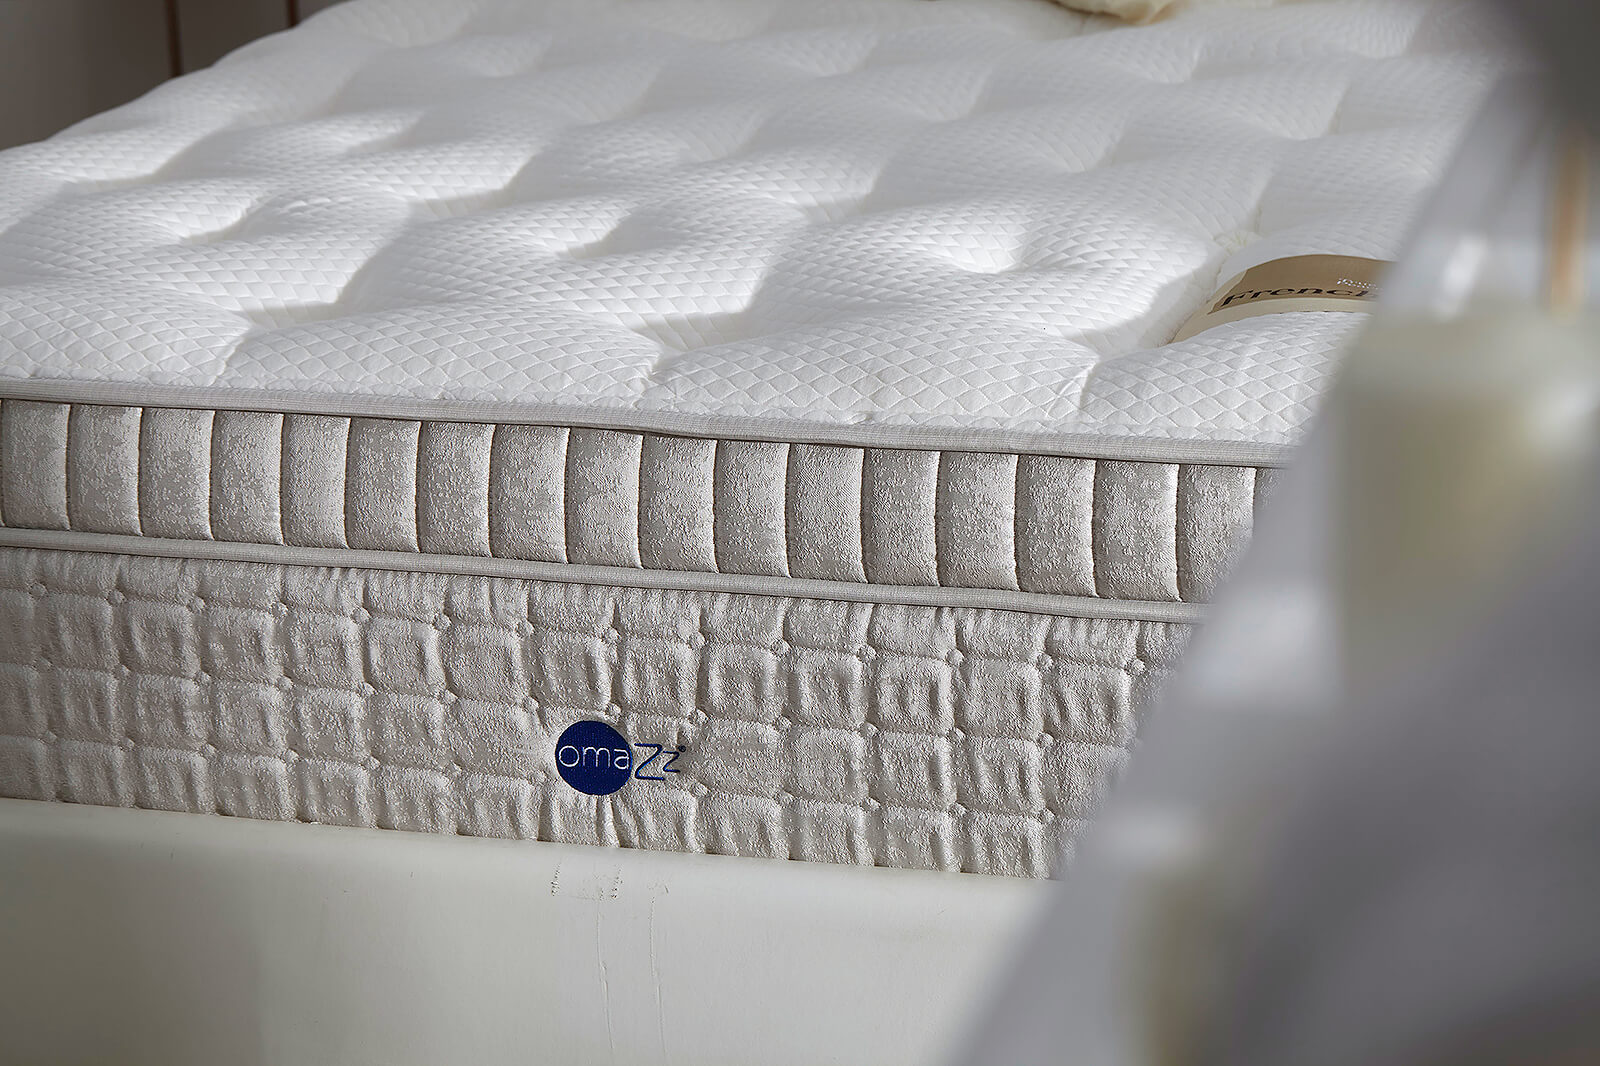 omazz-mattress-french-totto-o-5